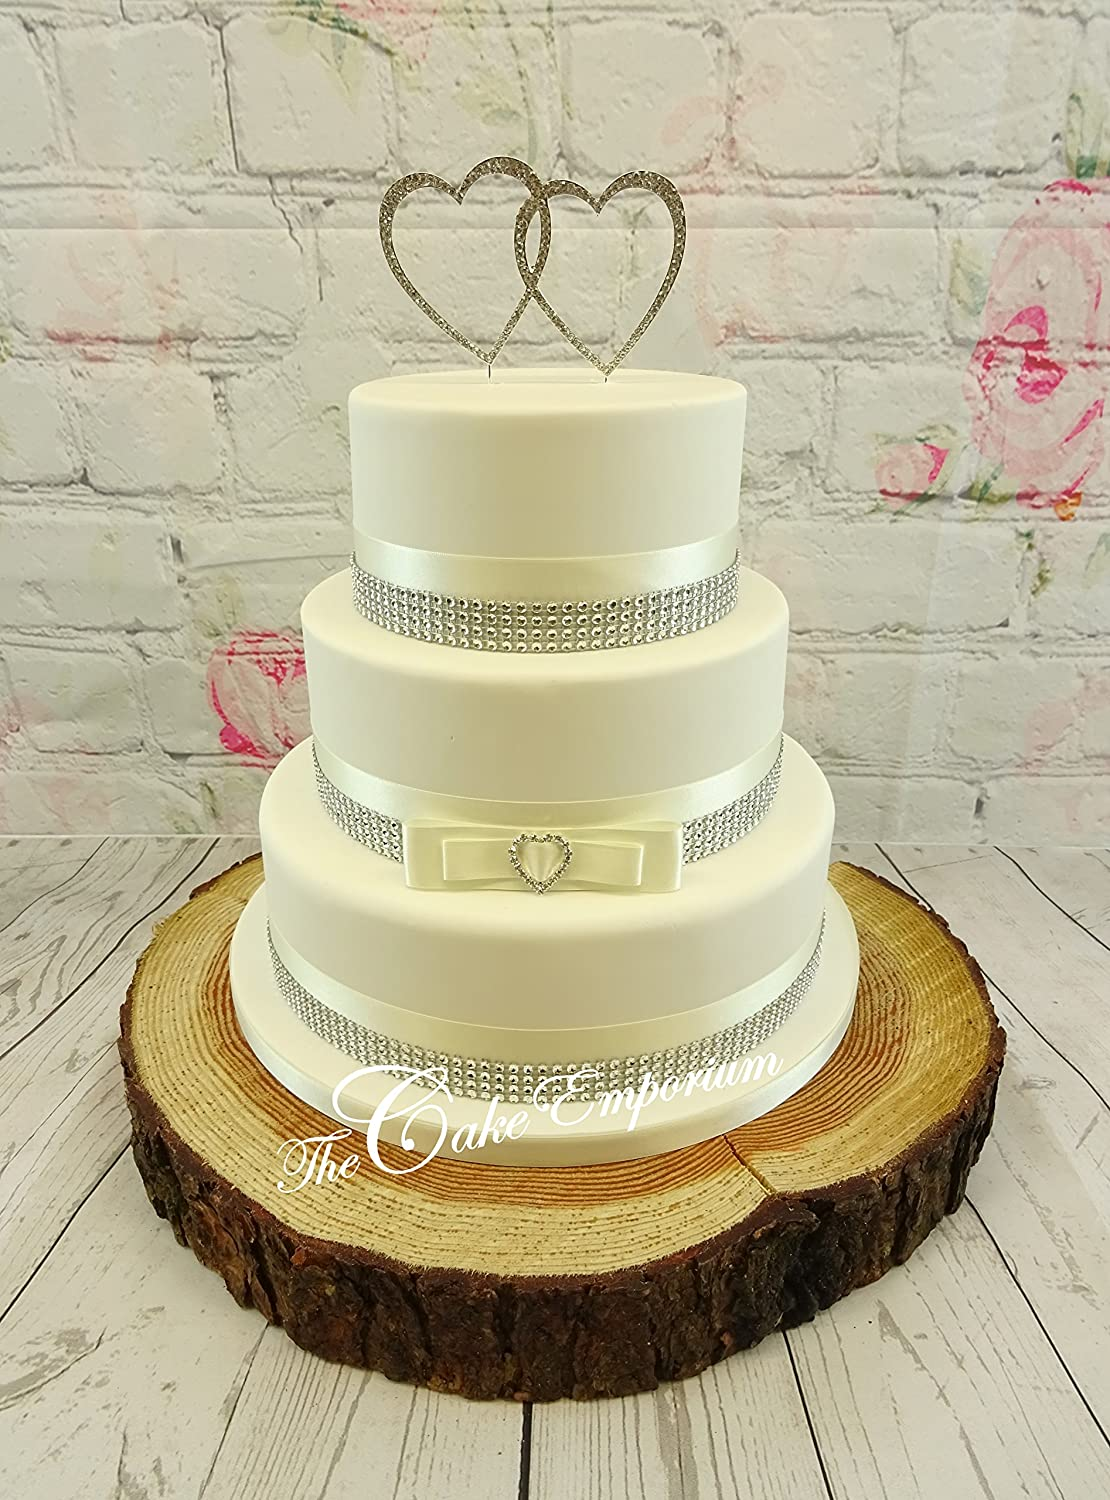 WEDDING CAKE DOUBLE LOVE HEART RHINESTONE - SATIN/DIAMANTE RIBBON ...